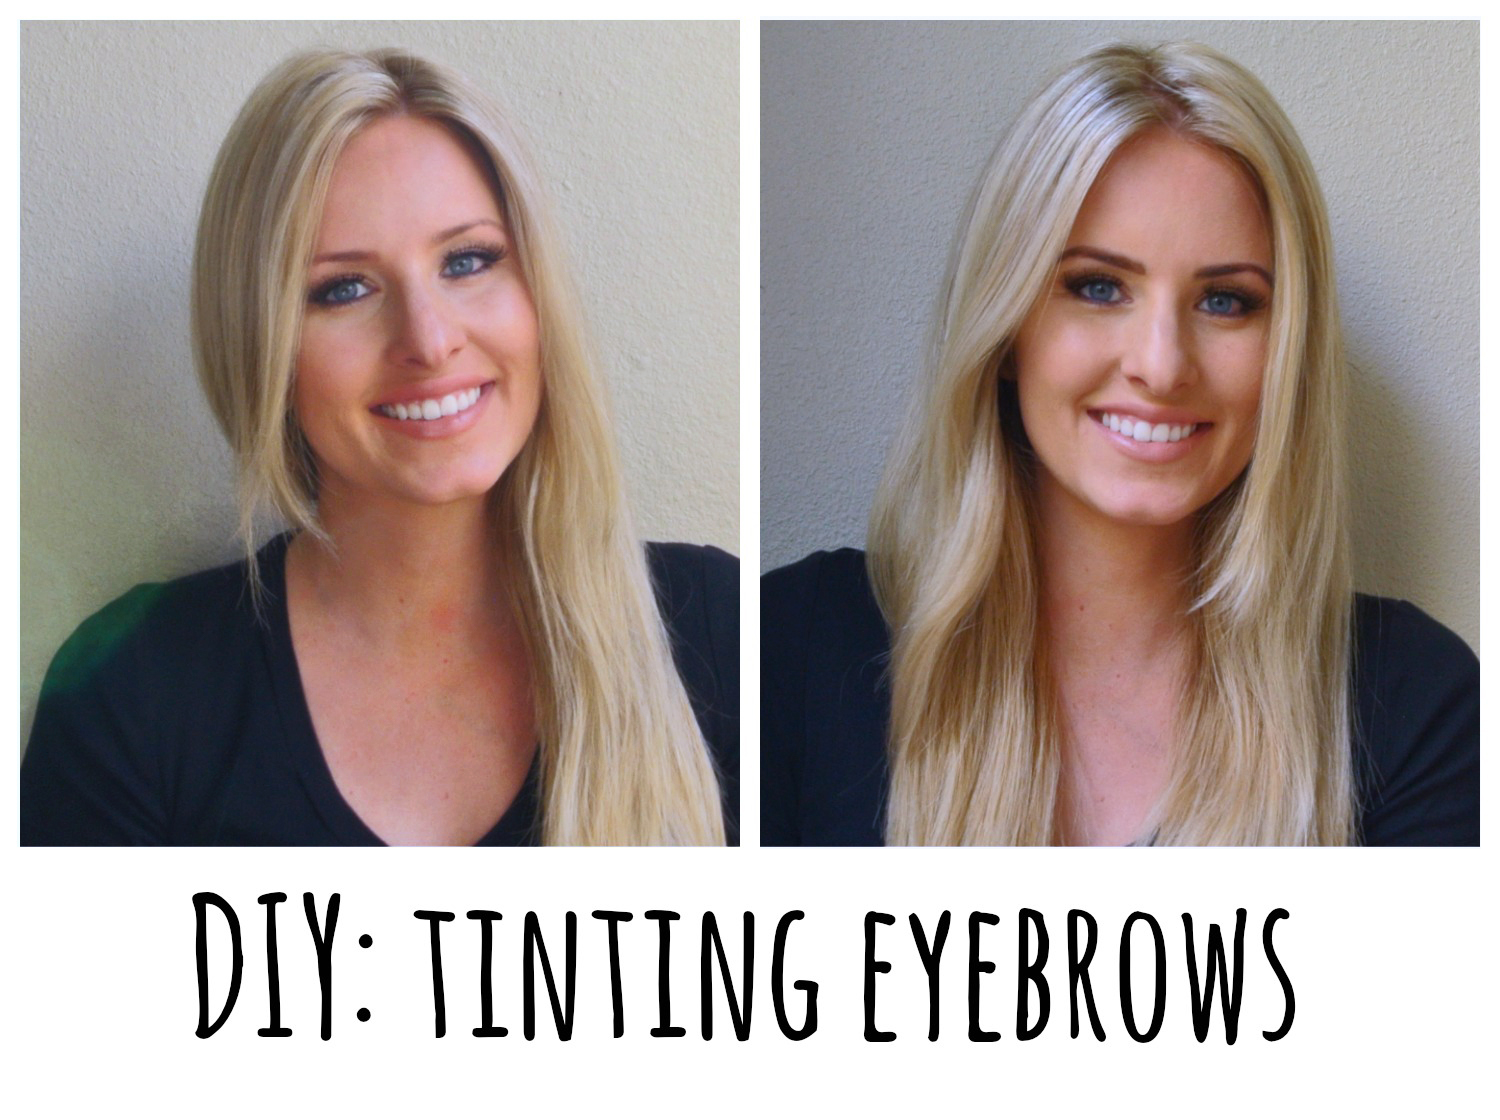 DIY: How to tint your eyebrows with Refectocil